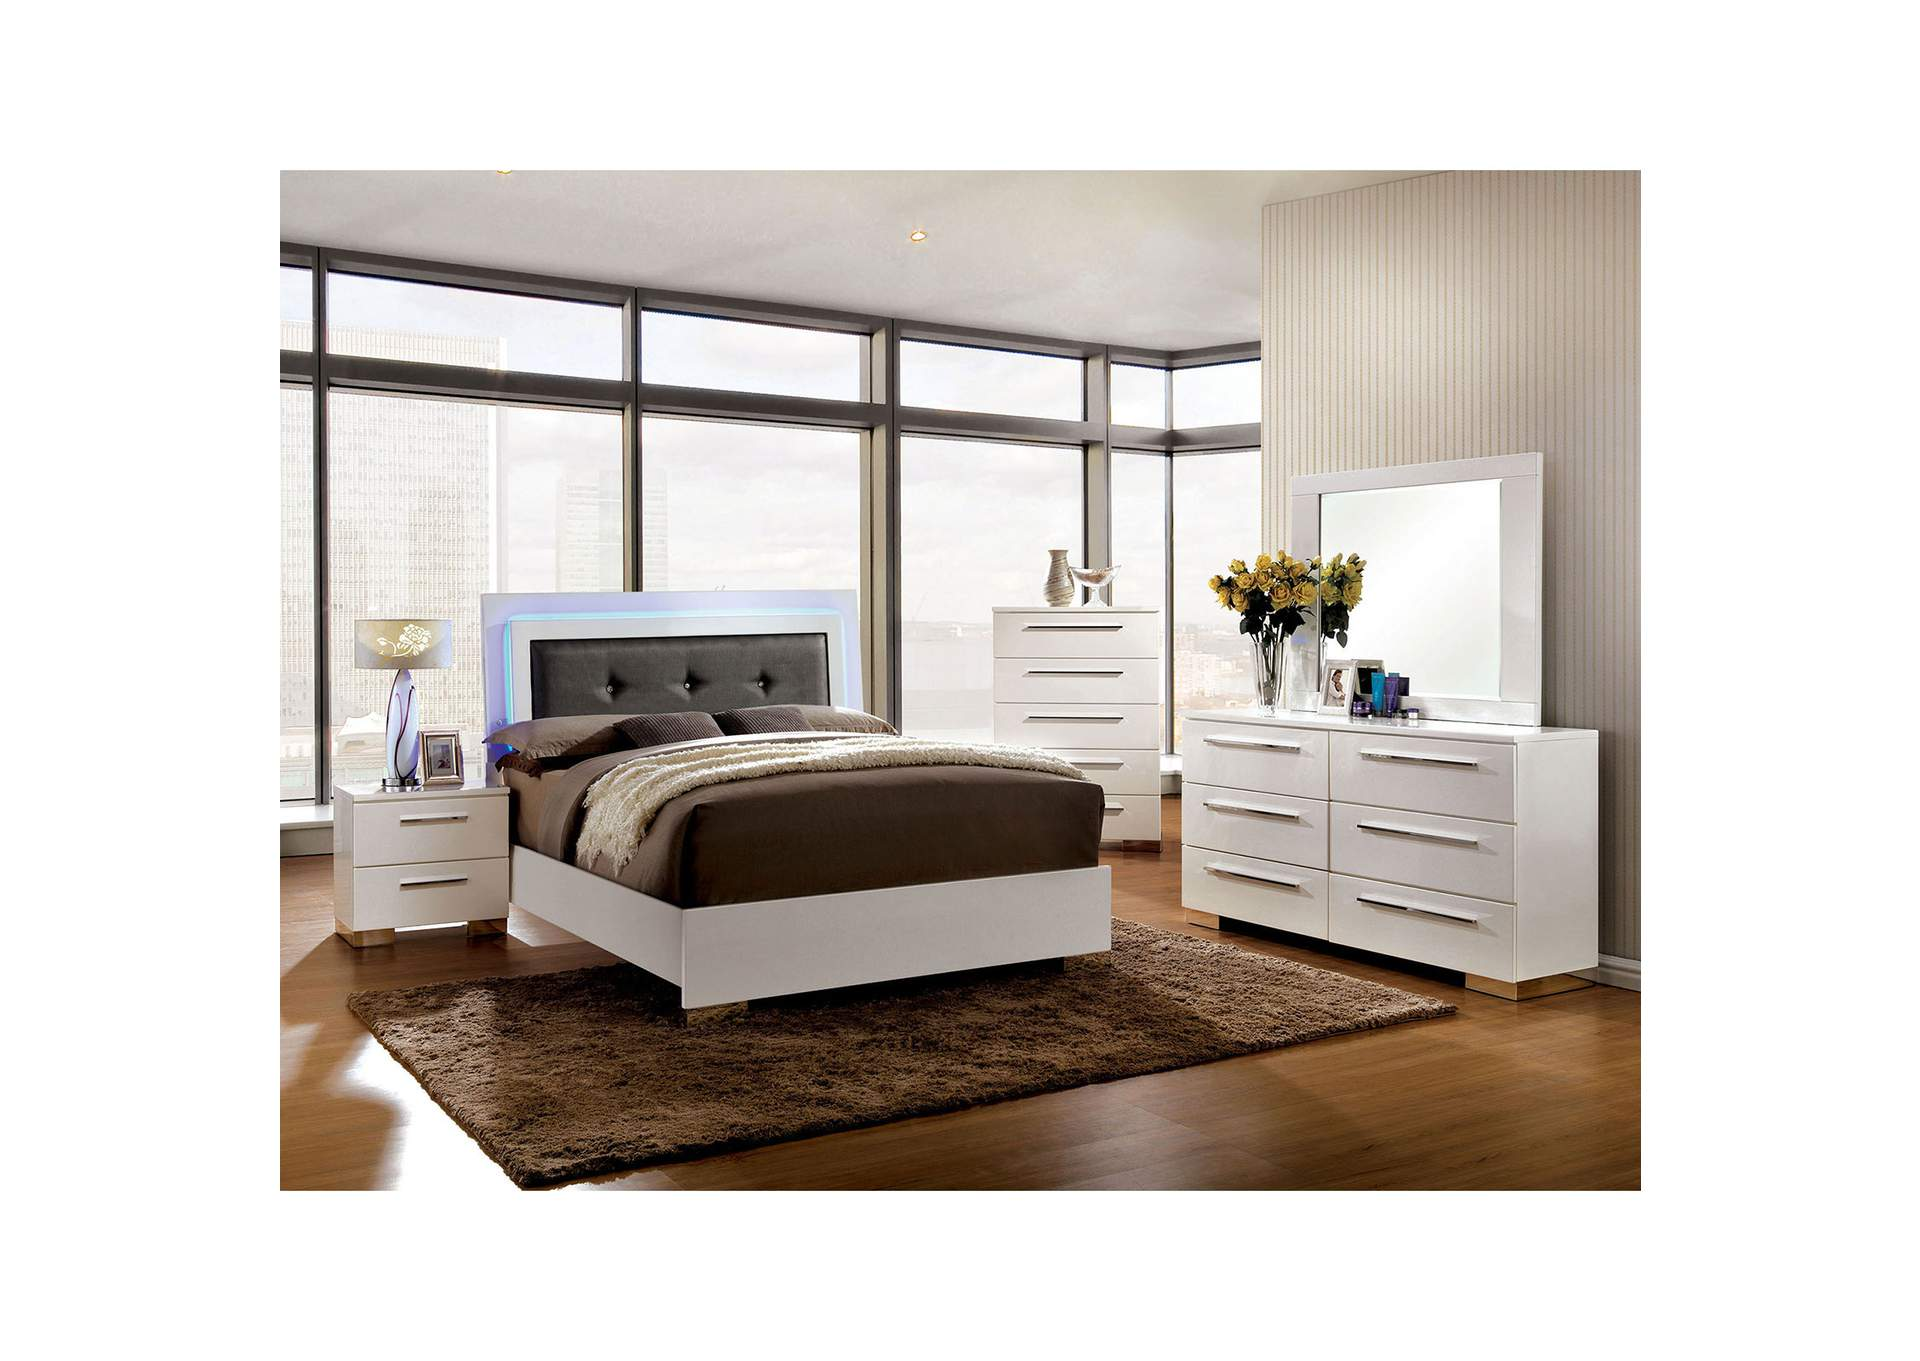 Clementine White Lacquer Queen Platform Bed w/LED Lights,Furniture of America